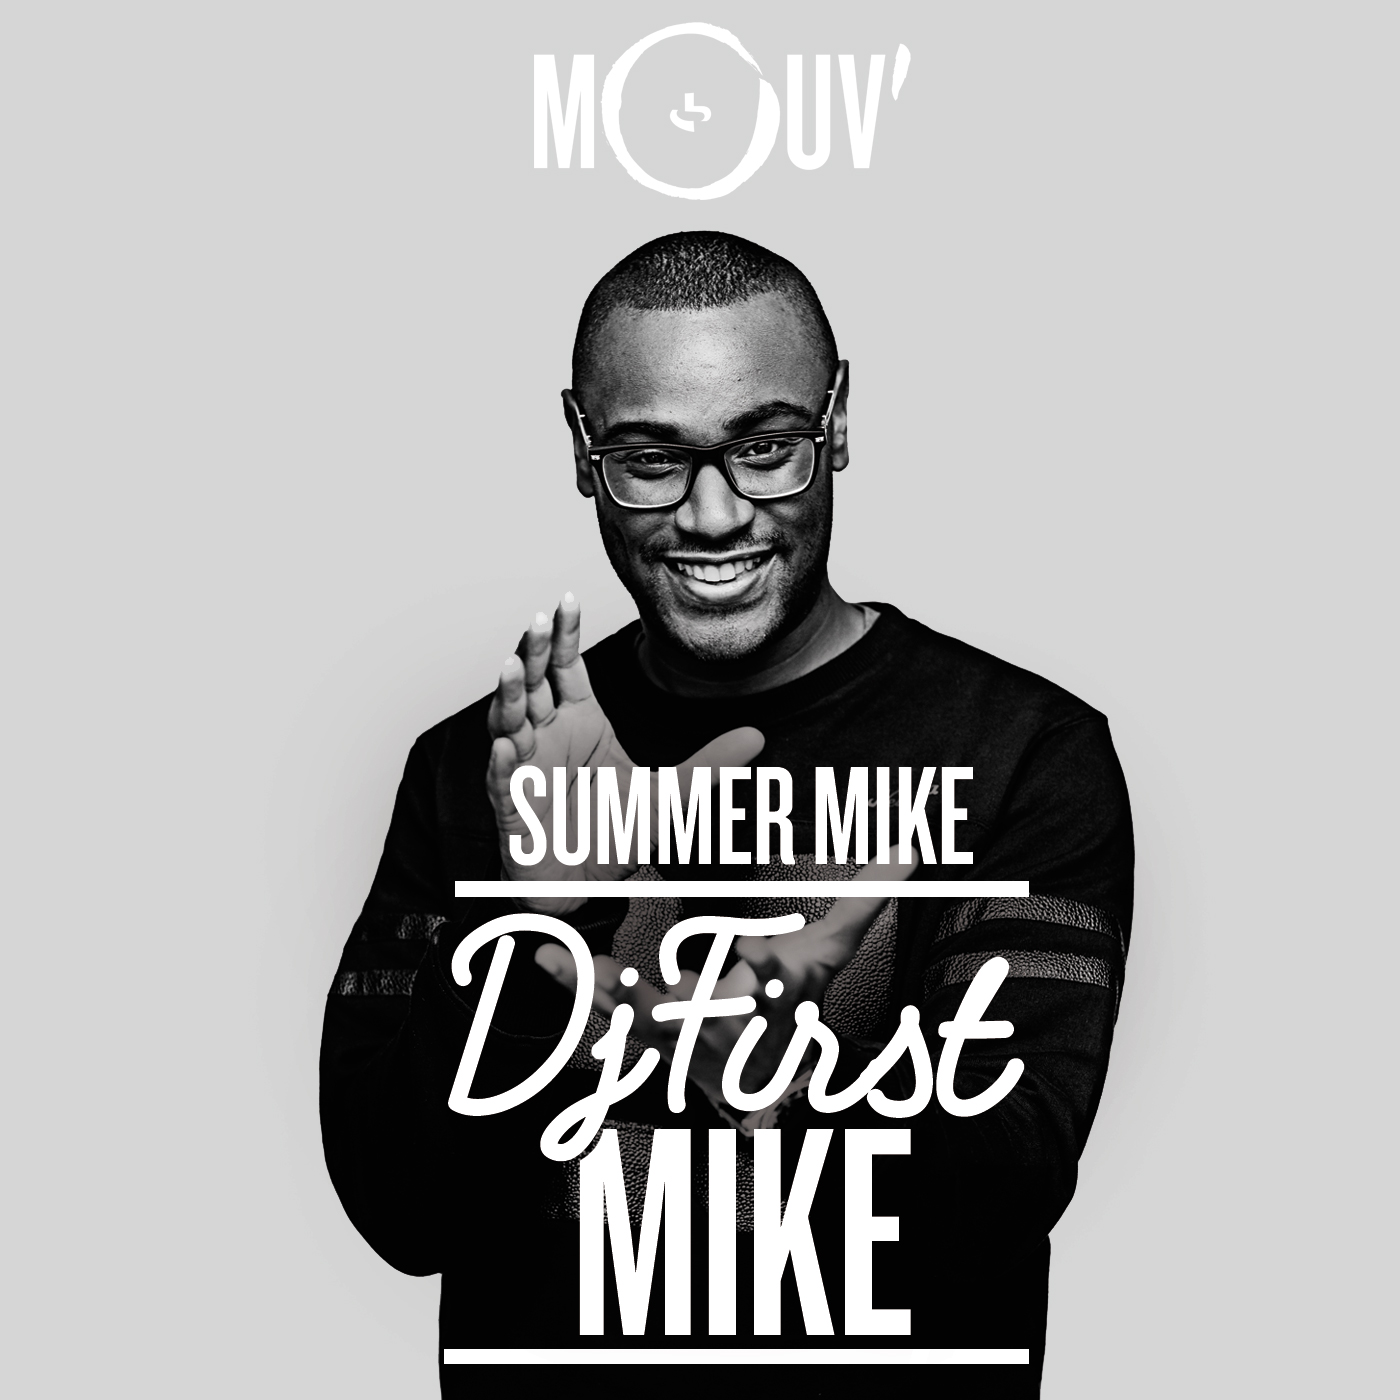 Summer Mike